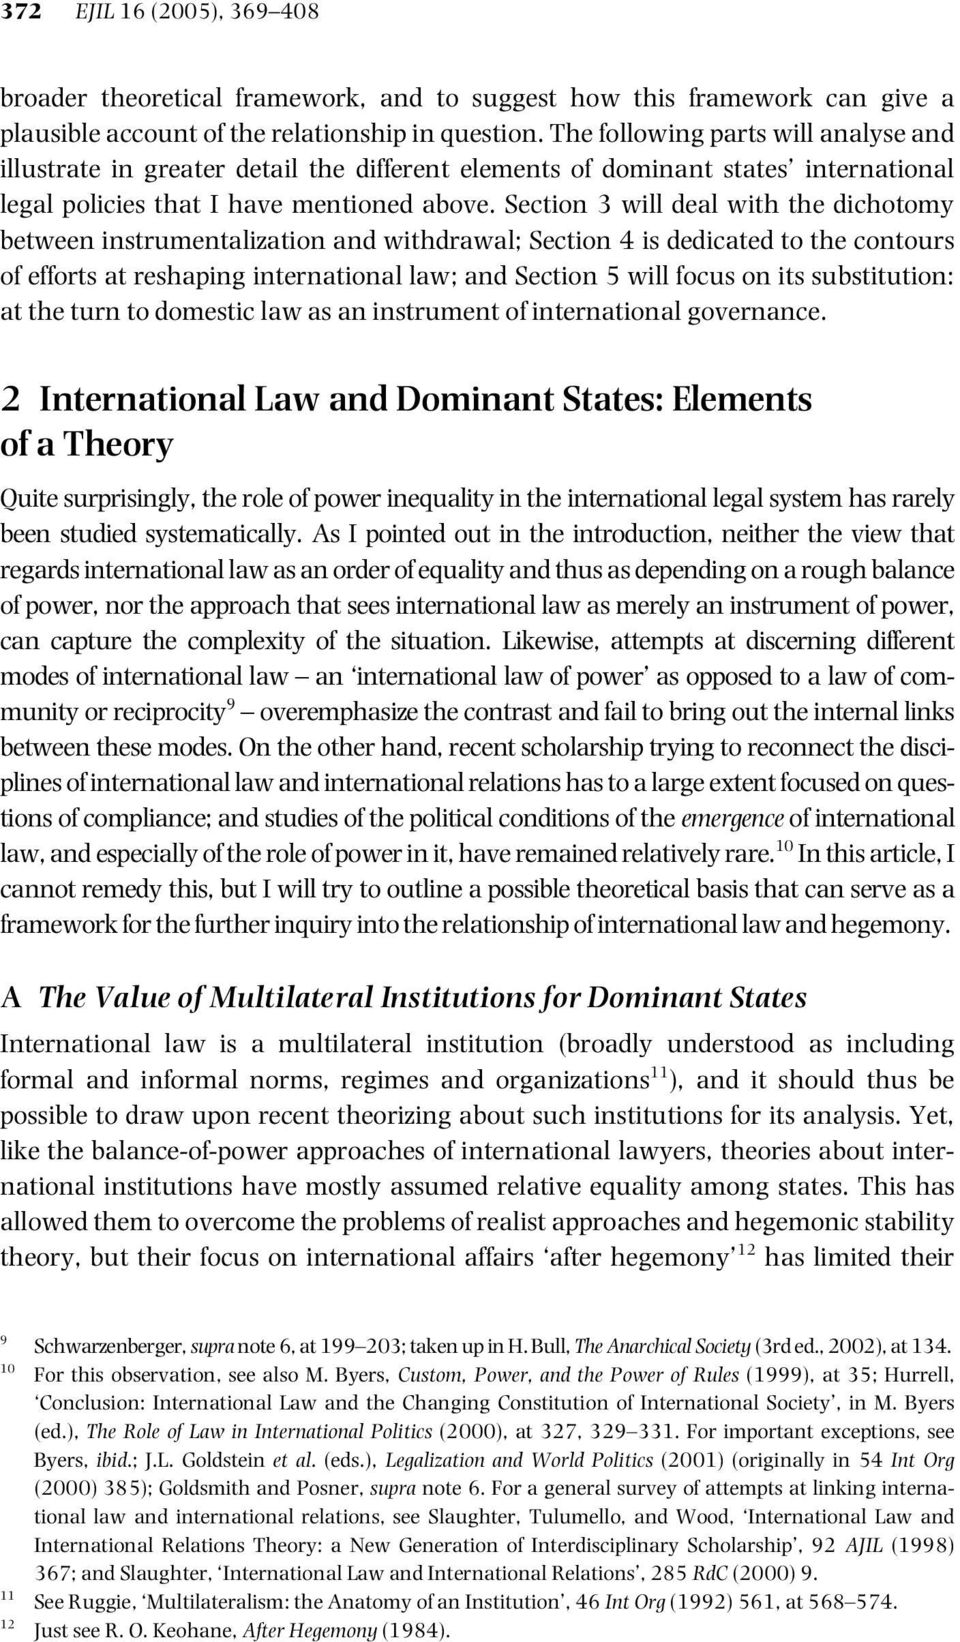 Section 3 will deal with the dichotomy between instrumentalization and withdrawal; Section 4 is dedicated to the contours of efforts at reshaping international law; and Section 5 will focus on its